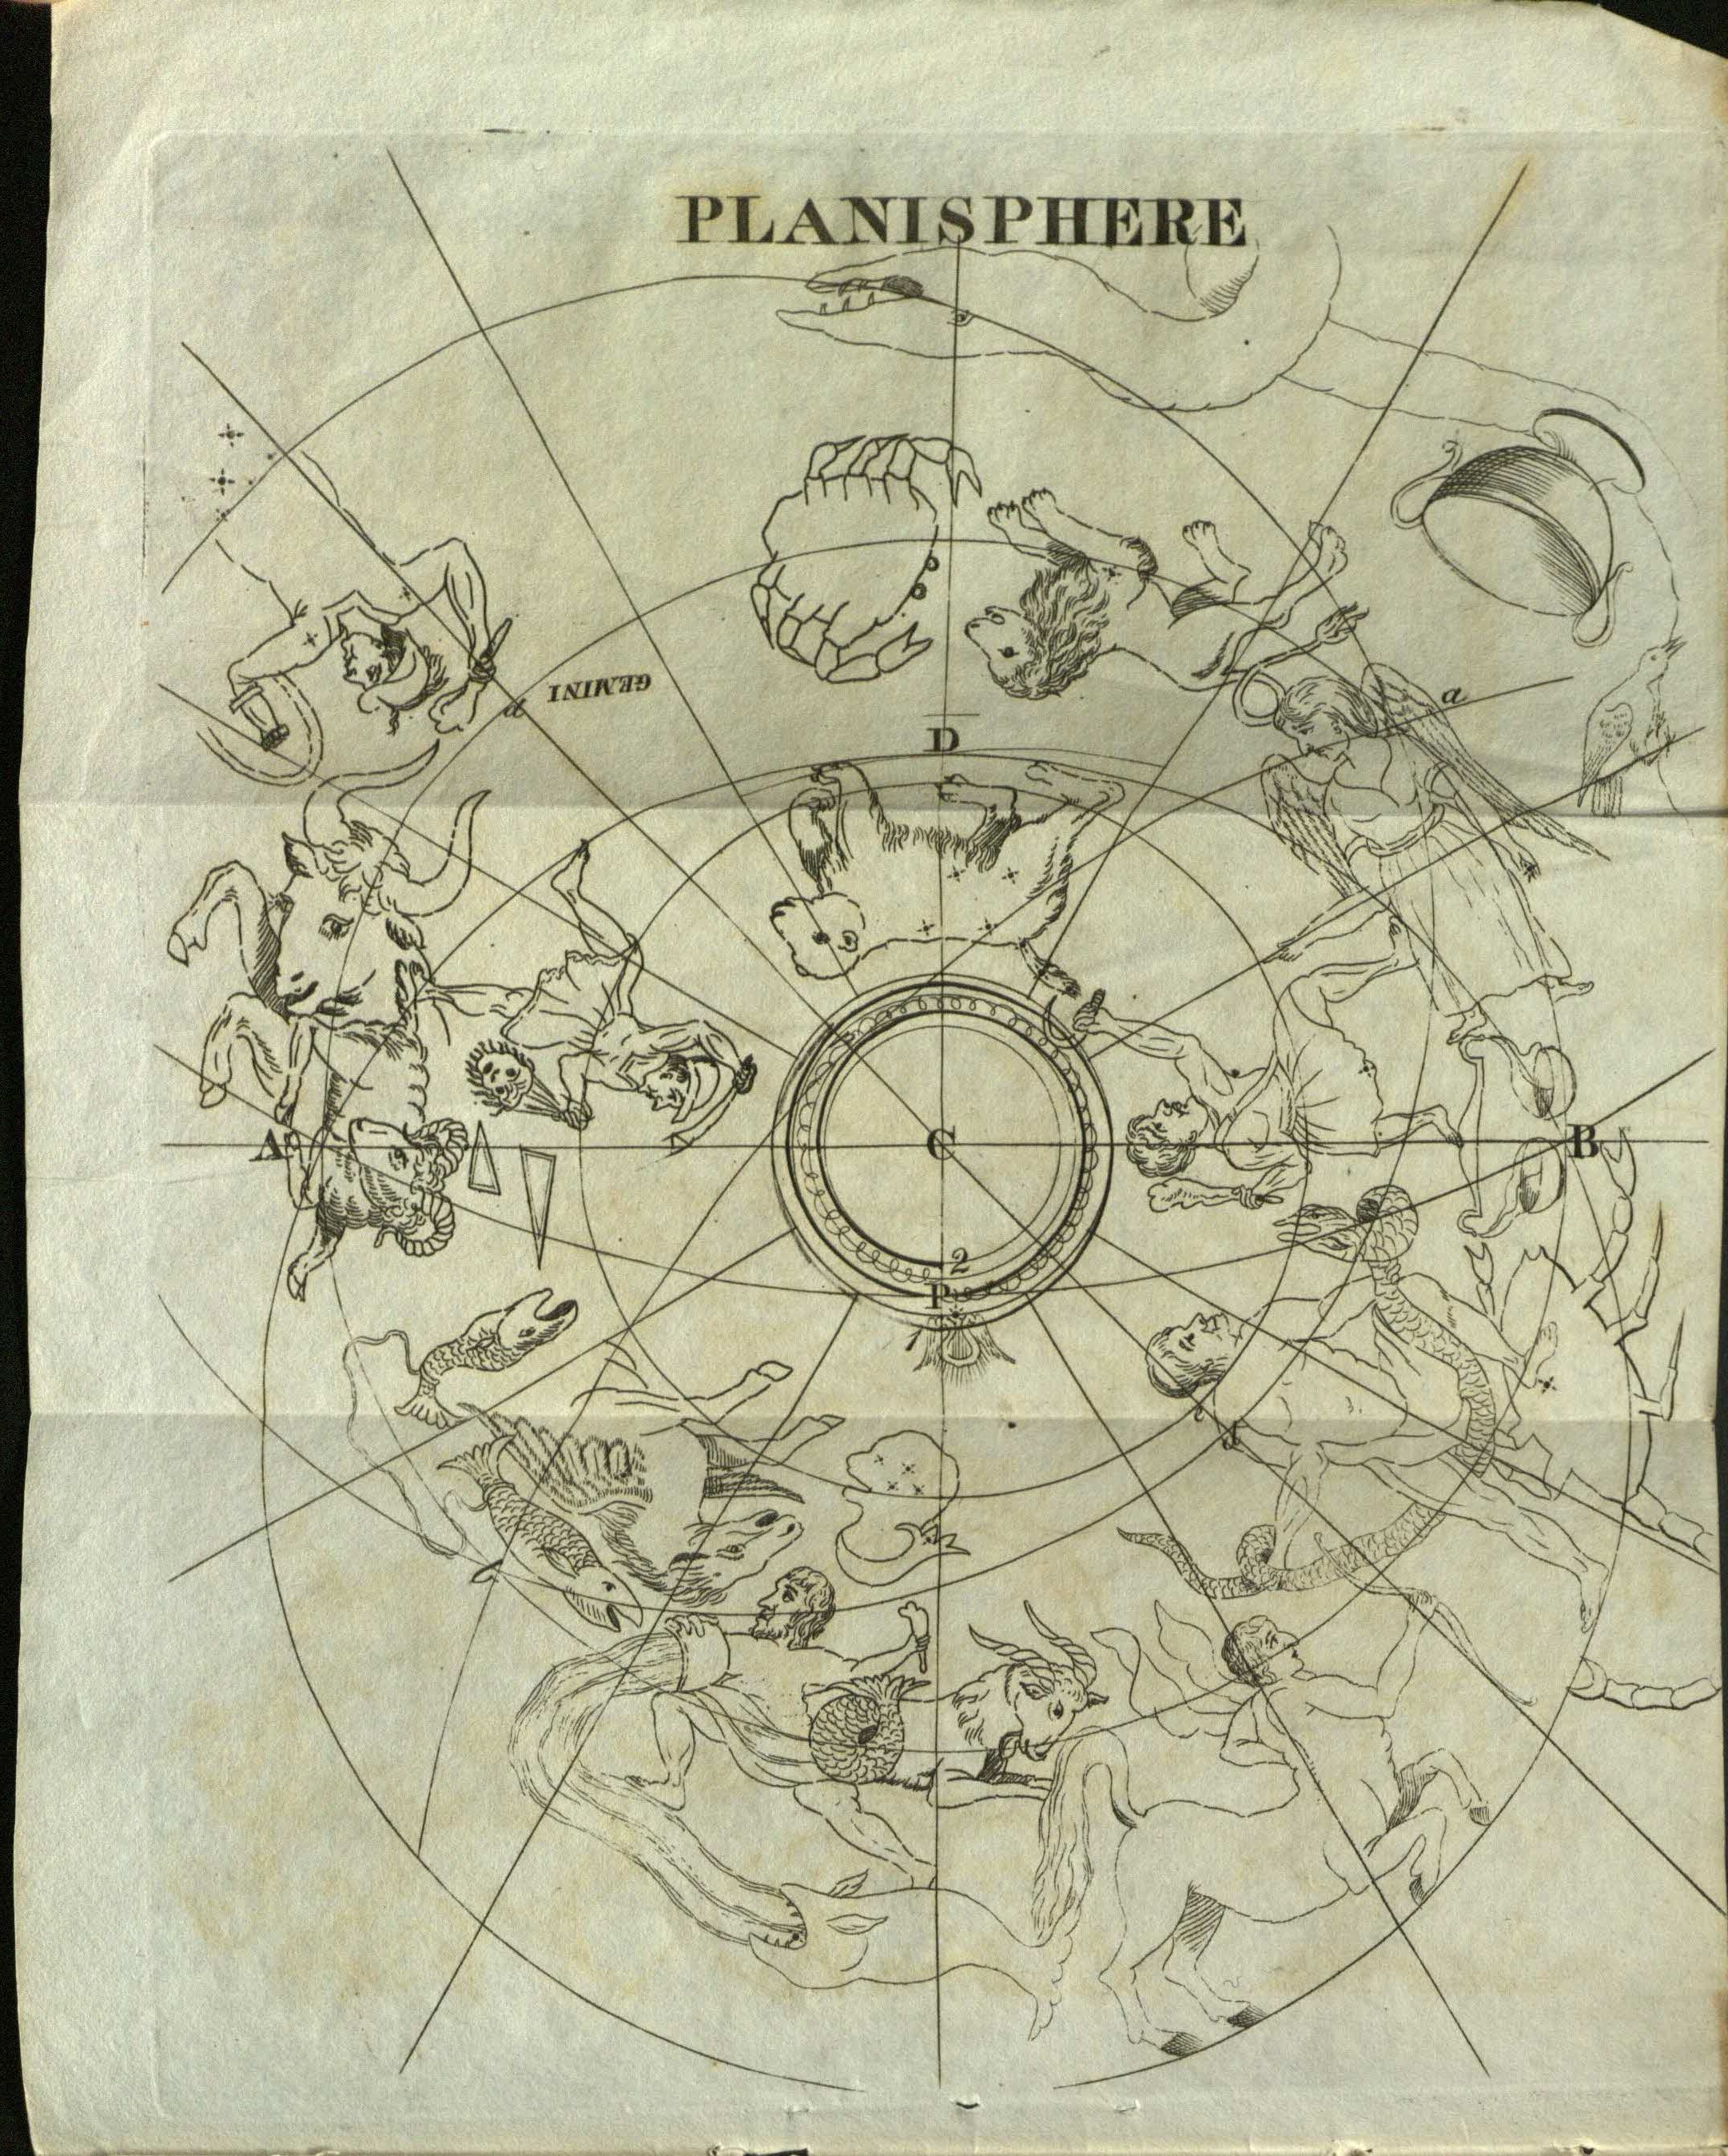 The original design of the ancient zodiacal and extra-zodiacal constellations, arranged on the present globes, which by their attitudes and positions prove the place of the summer solstice to have been in the middle of the goat, and the autumnal equinox in the ram : to which is added an account of the battle between Vicramaditya and Salavahana which arose from a combination of the precession and nutation of the earth's axis : also, further remarks on the long zodiac of Tantyra [sic].